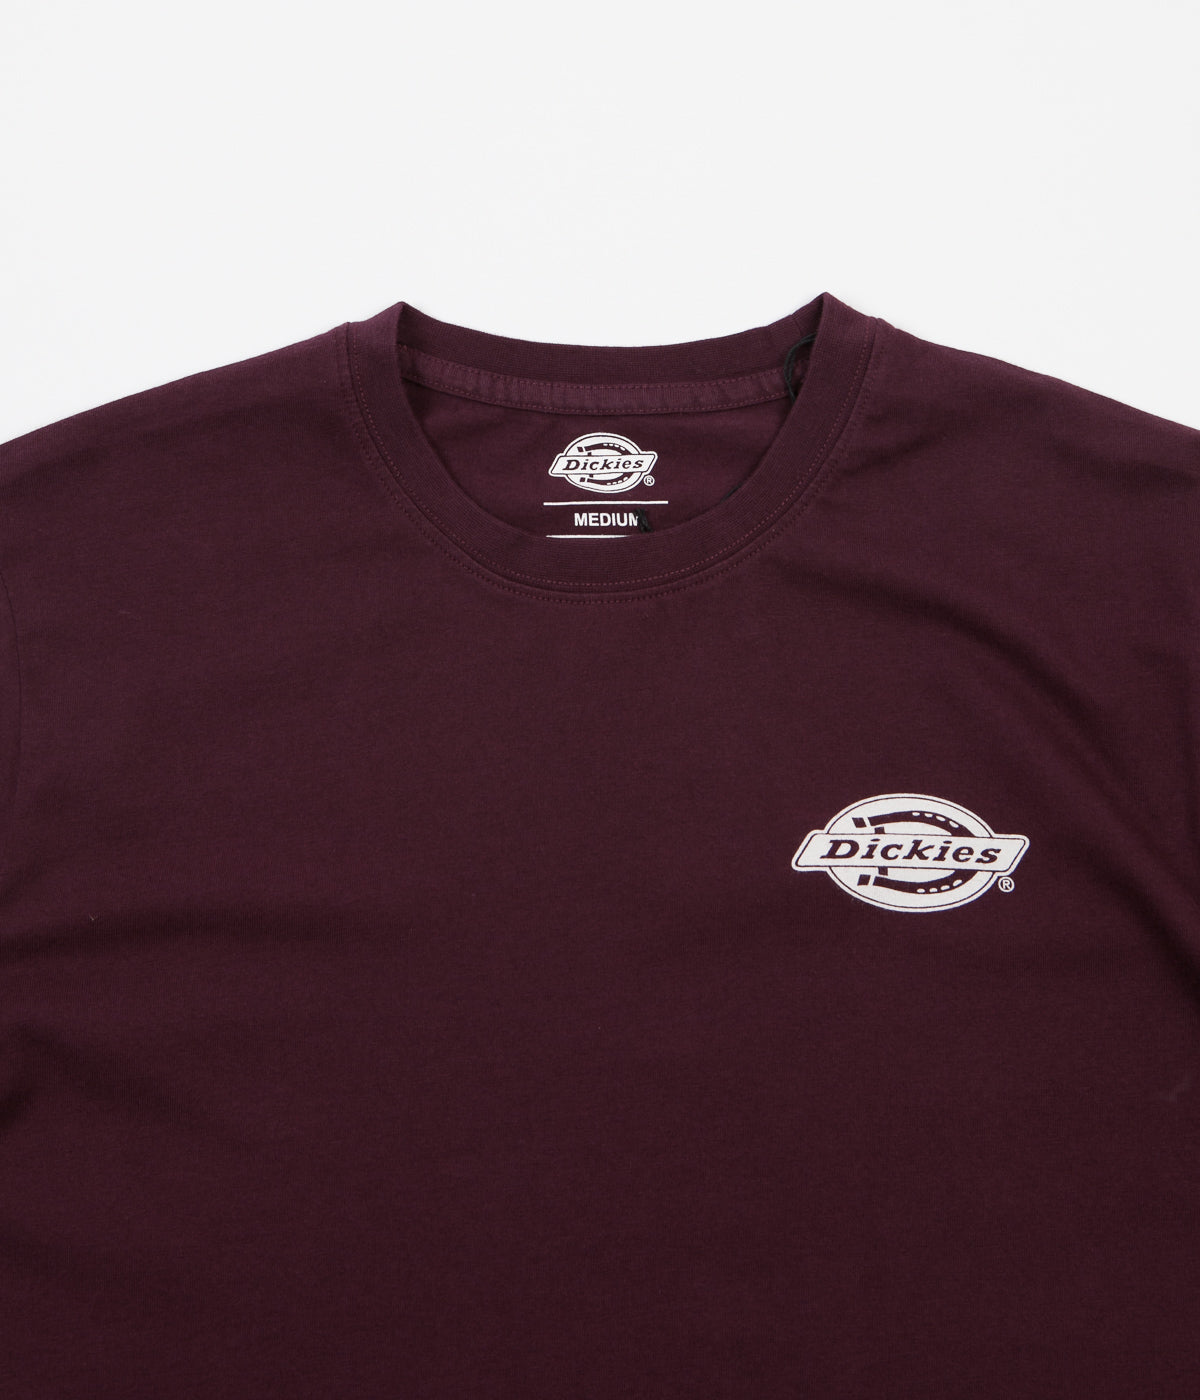 Dickies Mount Union T-Shirt - Maroon